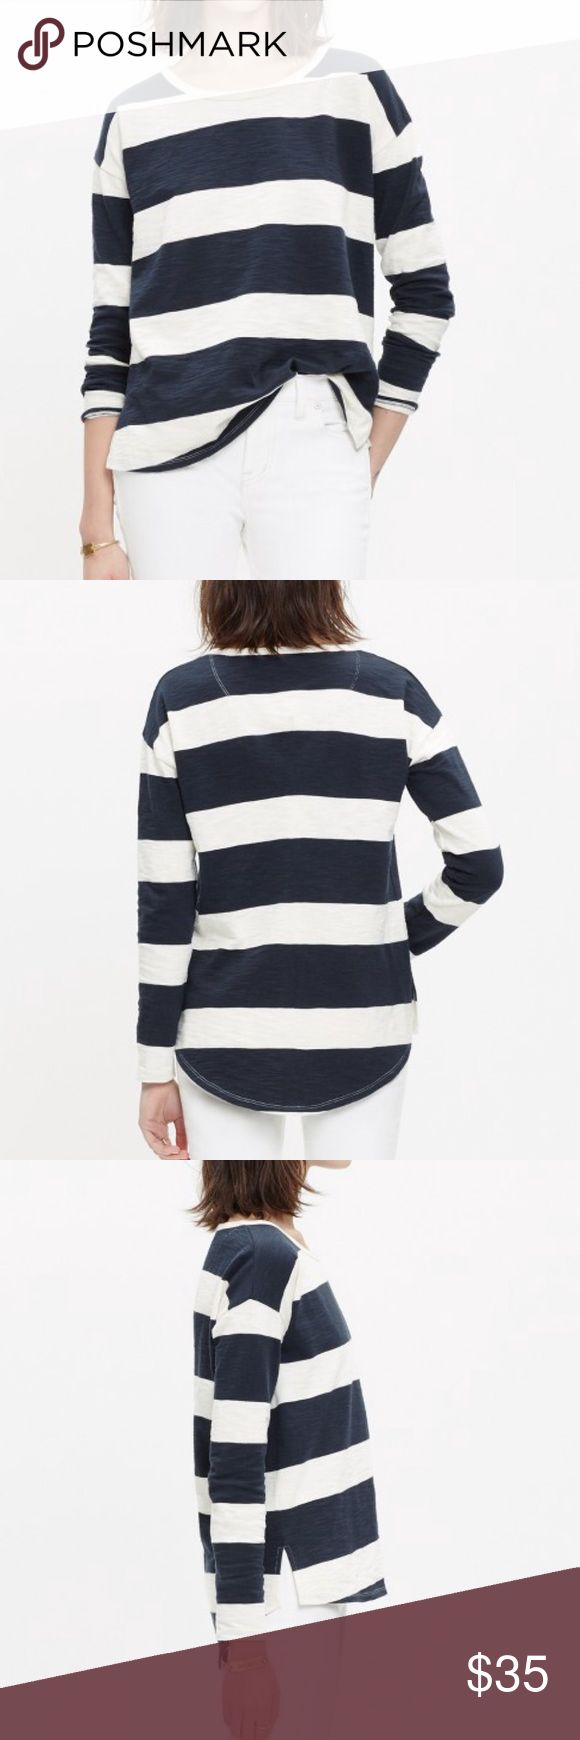 """Madewell setlist pullover in rugby stripe Madewell setlist pullover in rugby stripe.  This cozy striped pullover has a slouchy fit and an easy neckline for a pop-it-on-over-everything feel. In EUC. Worn once. Navy blue and white/cream stripes. Heavier weight than a tee, but not quite a sweatshirt. Hi lo hem. Underarm to underarm 30"""". Length 24""""-26"""". Madewell Tops Tees - Long Sleeve"""